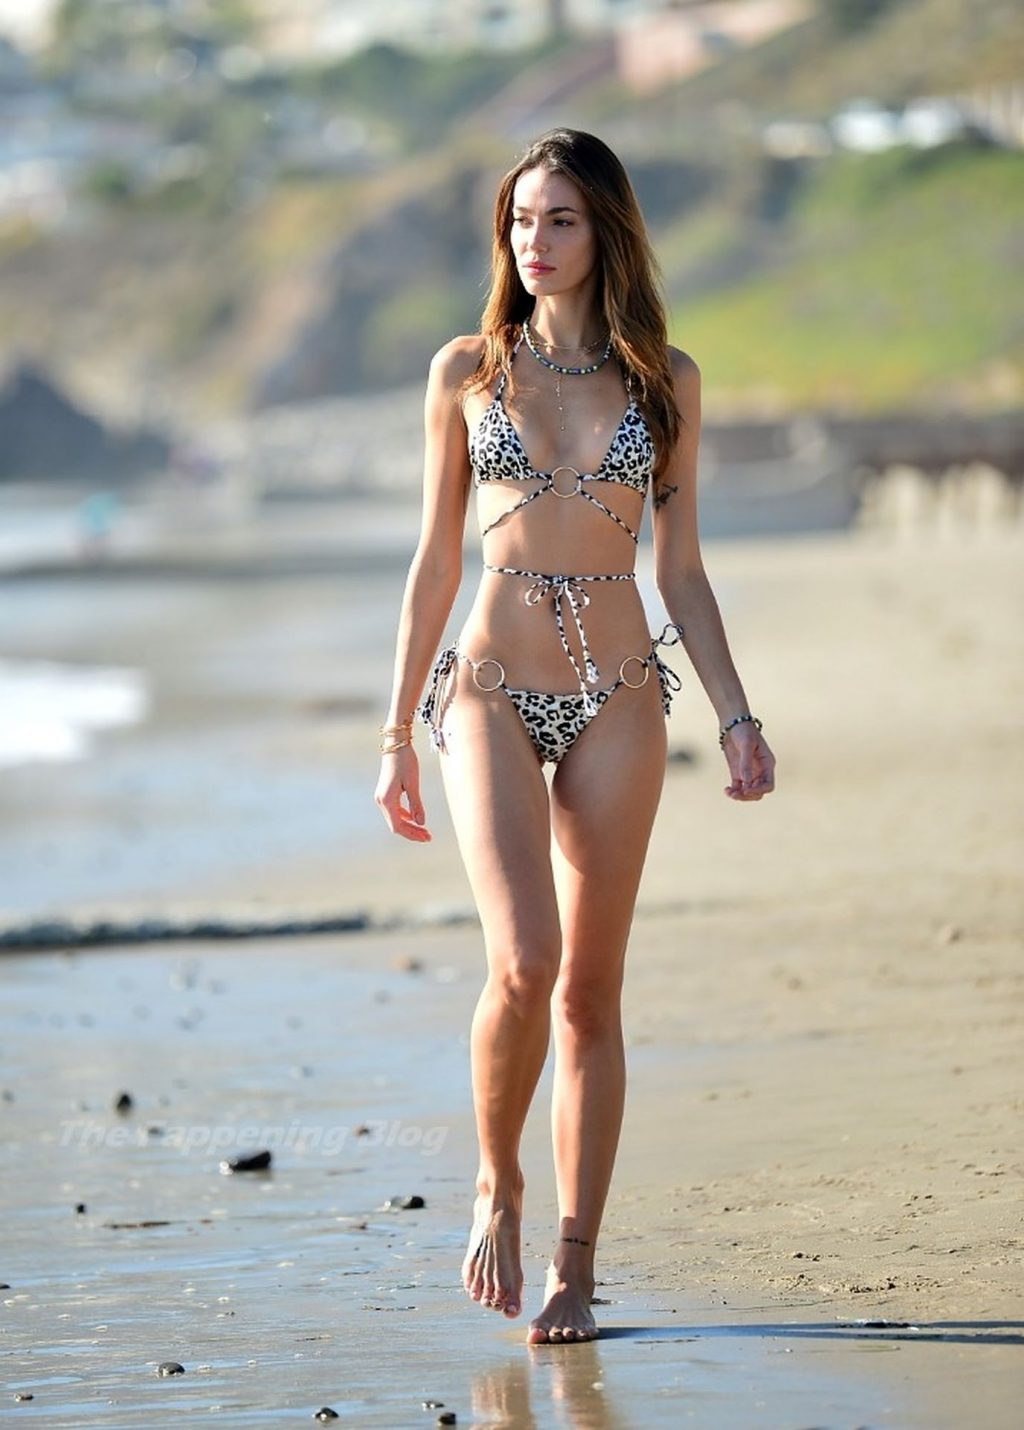 Marianne Fonseca Displays Her Incredible Body During a Day at the Beach (16 Photos)